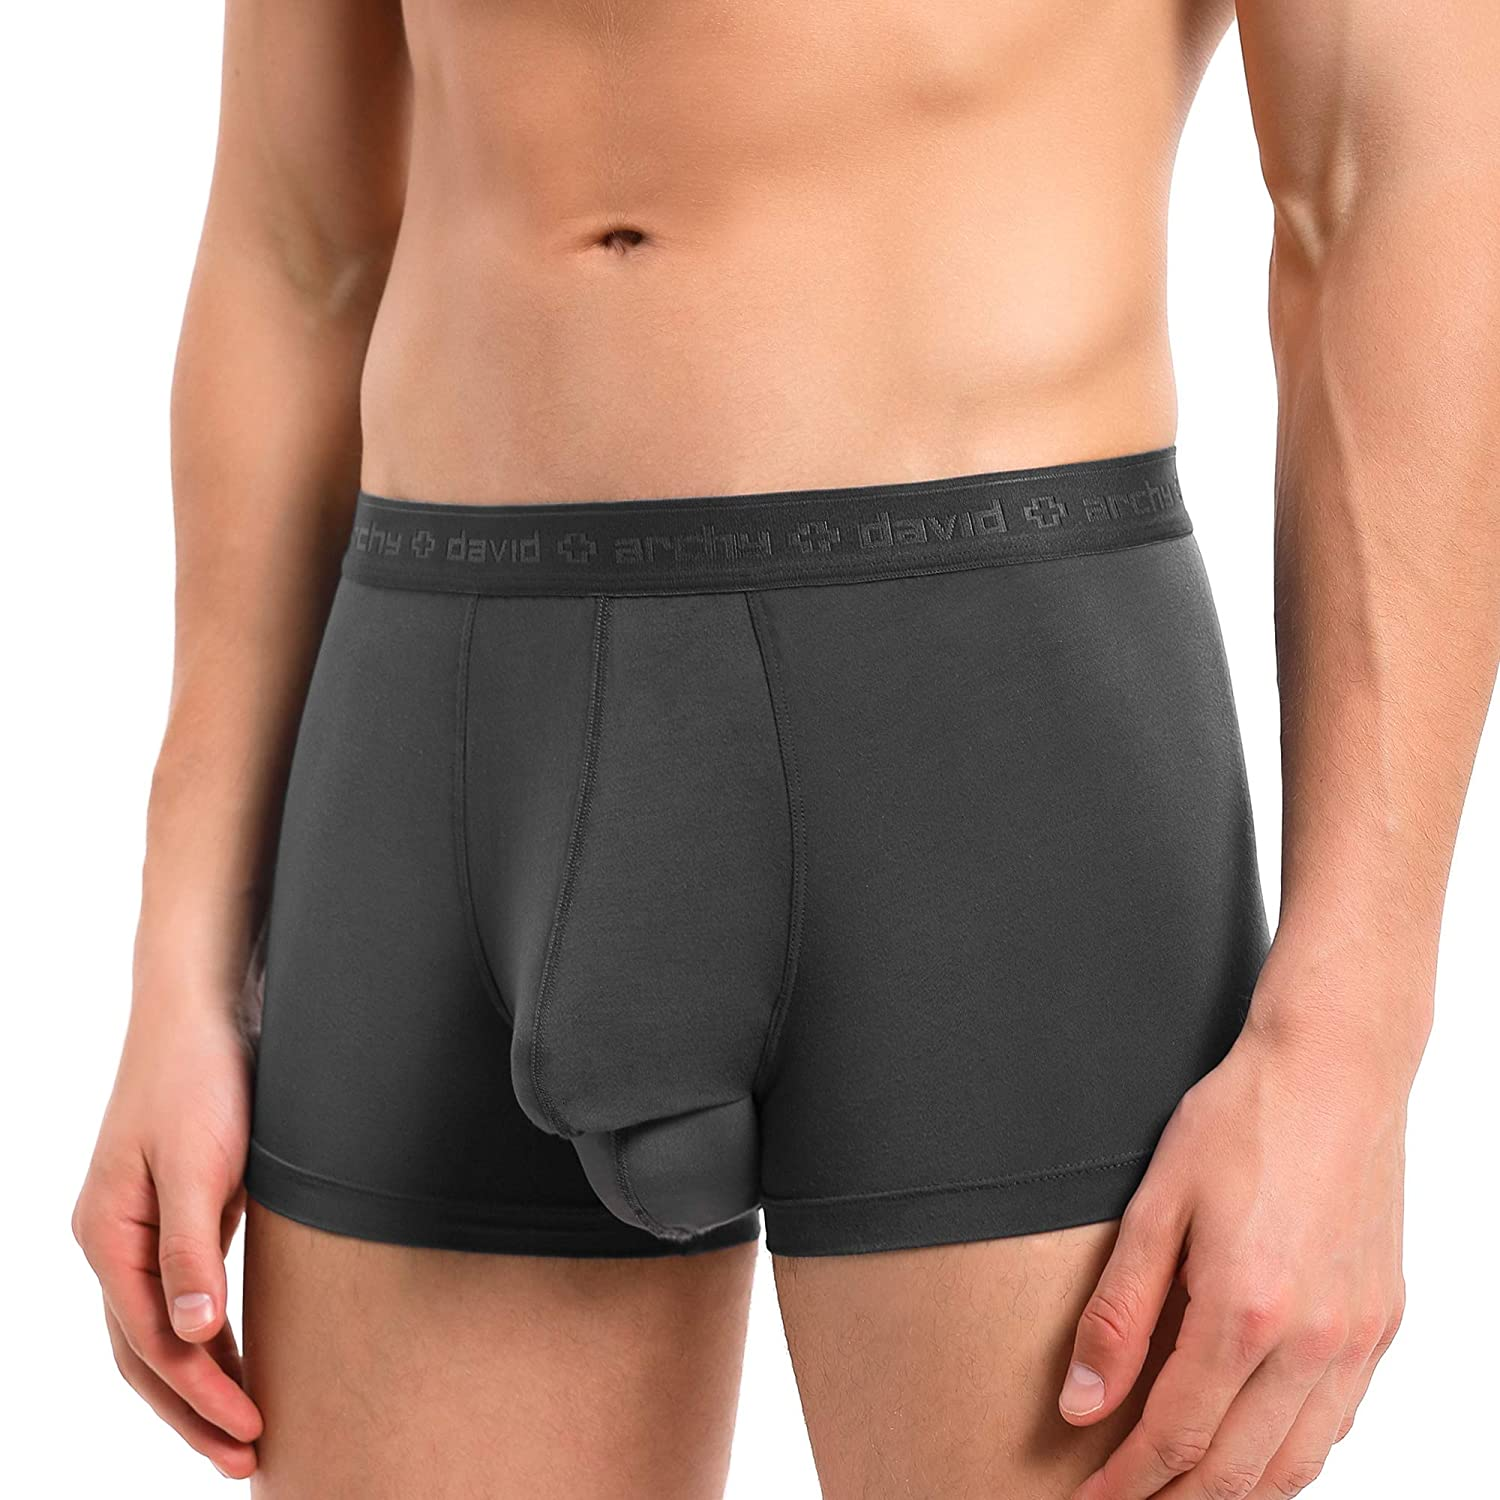 David Archy Men 4 Pack Underwear Micro Modal Separate Pouches Trunks with Fly